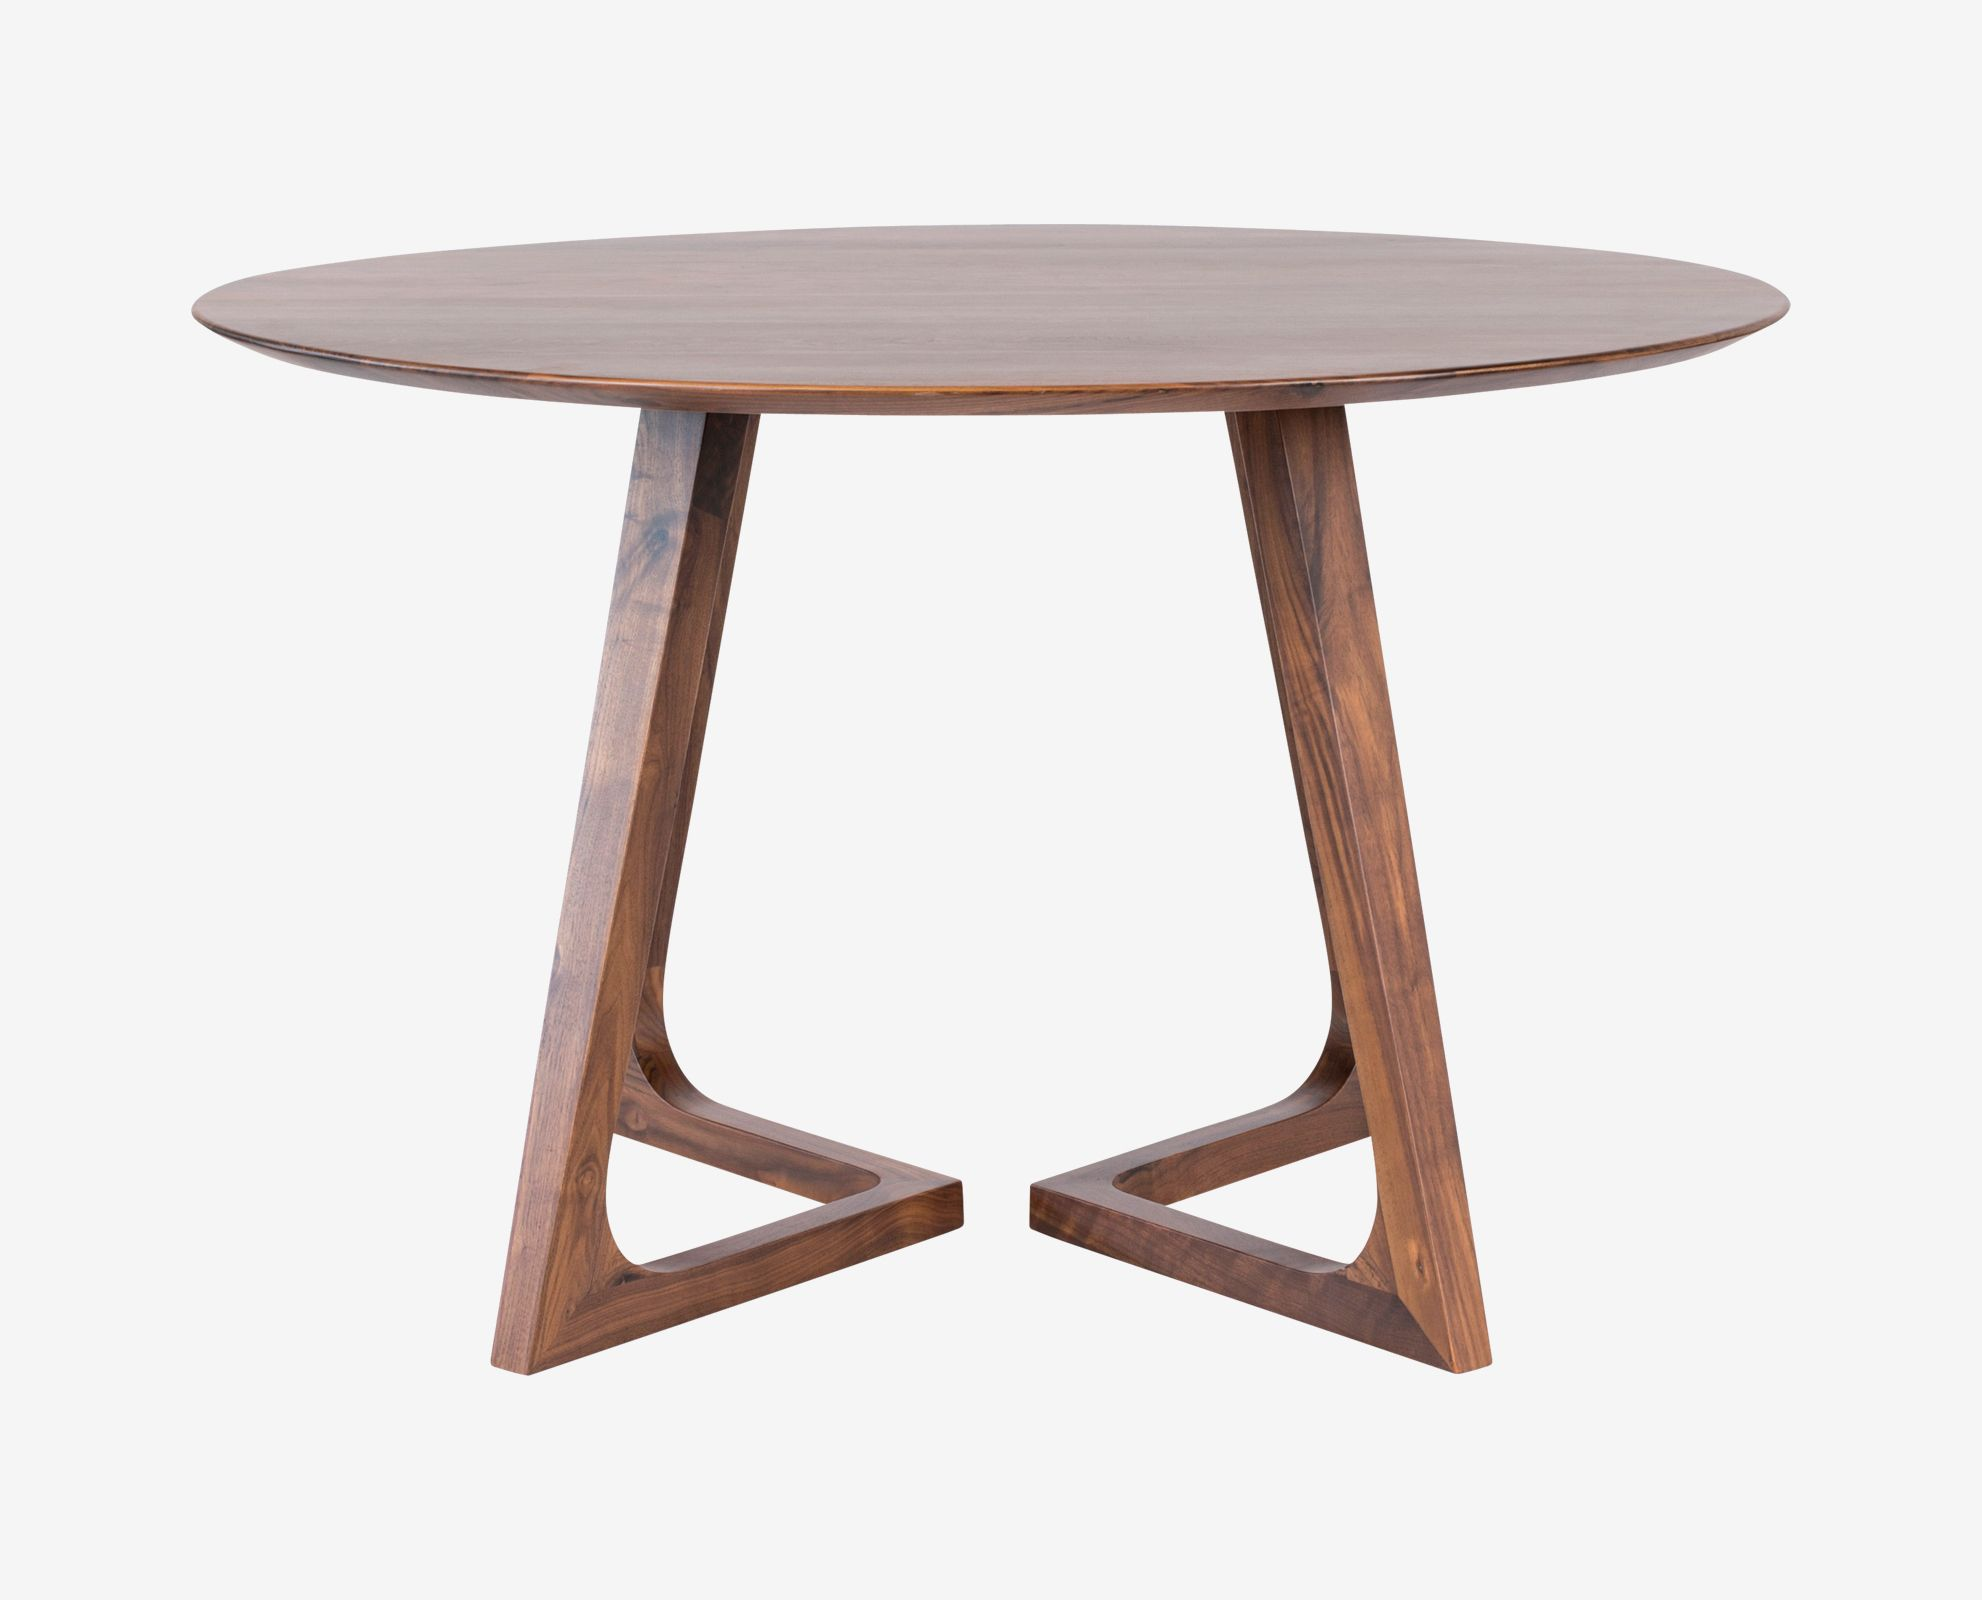 Dania The Cress round dining table will nurture your inner